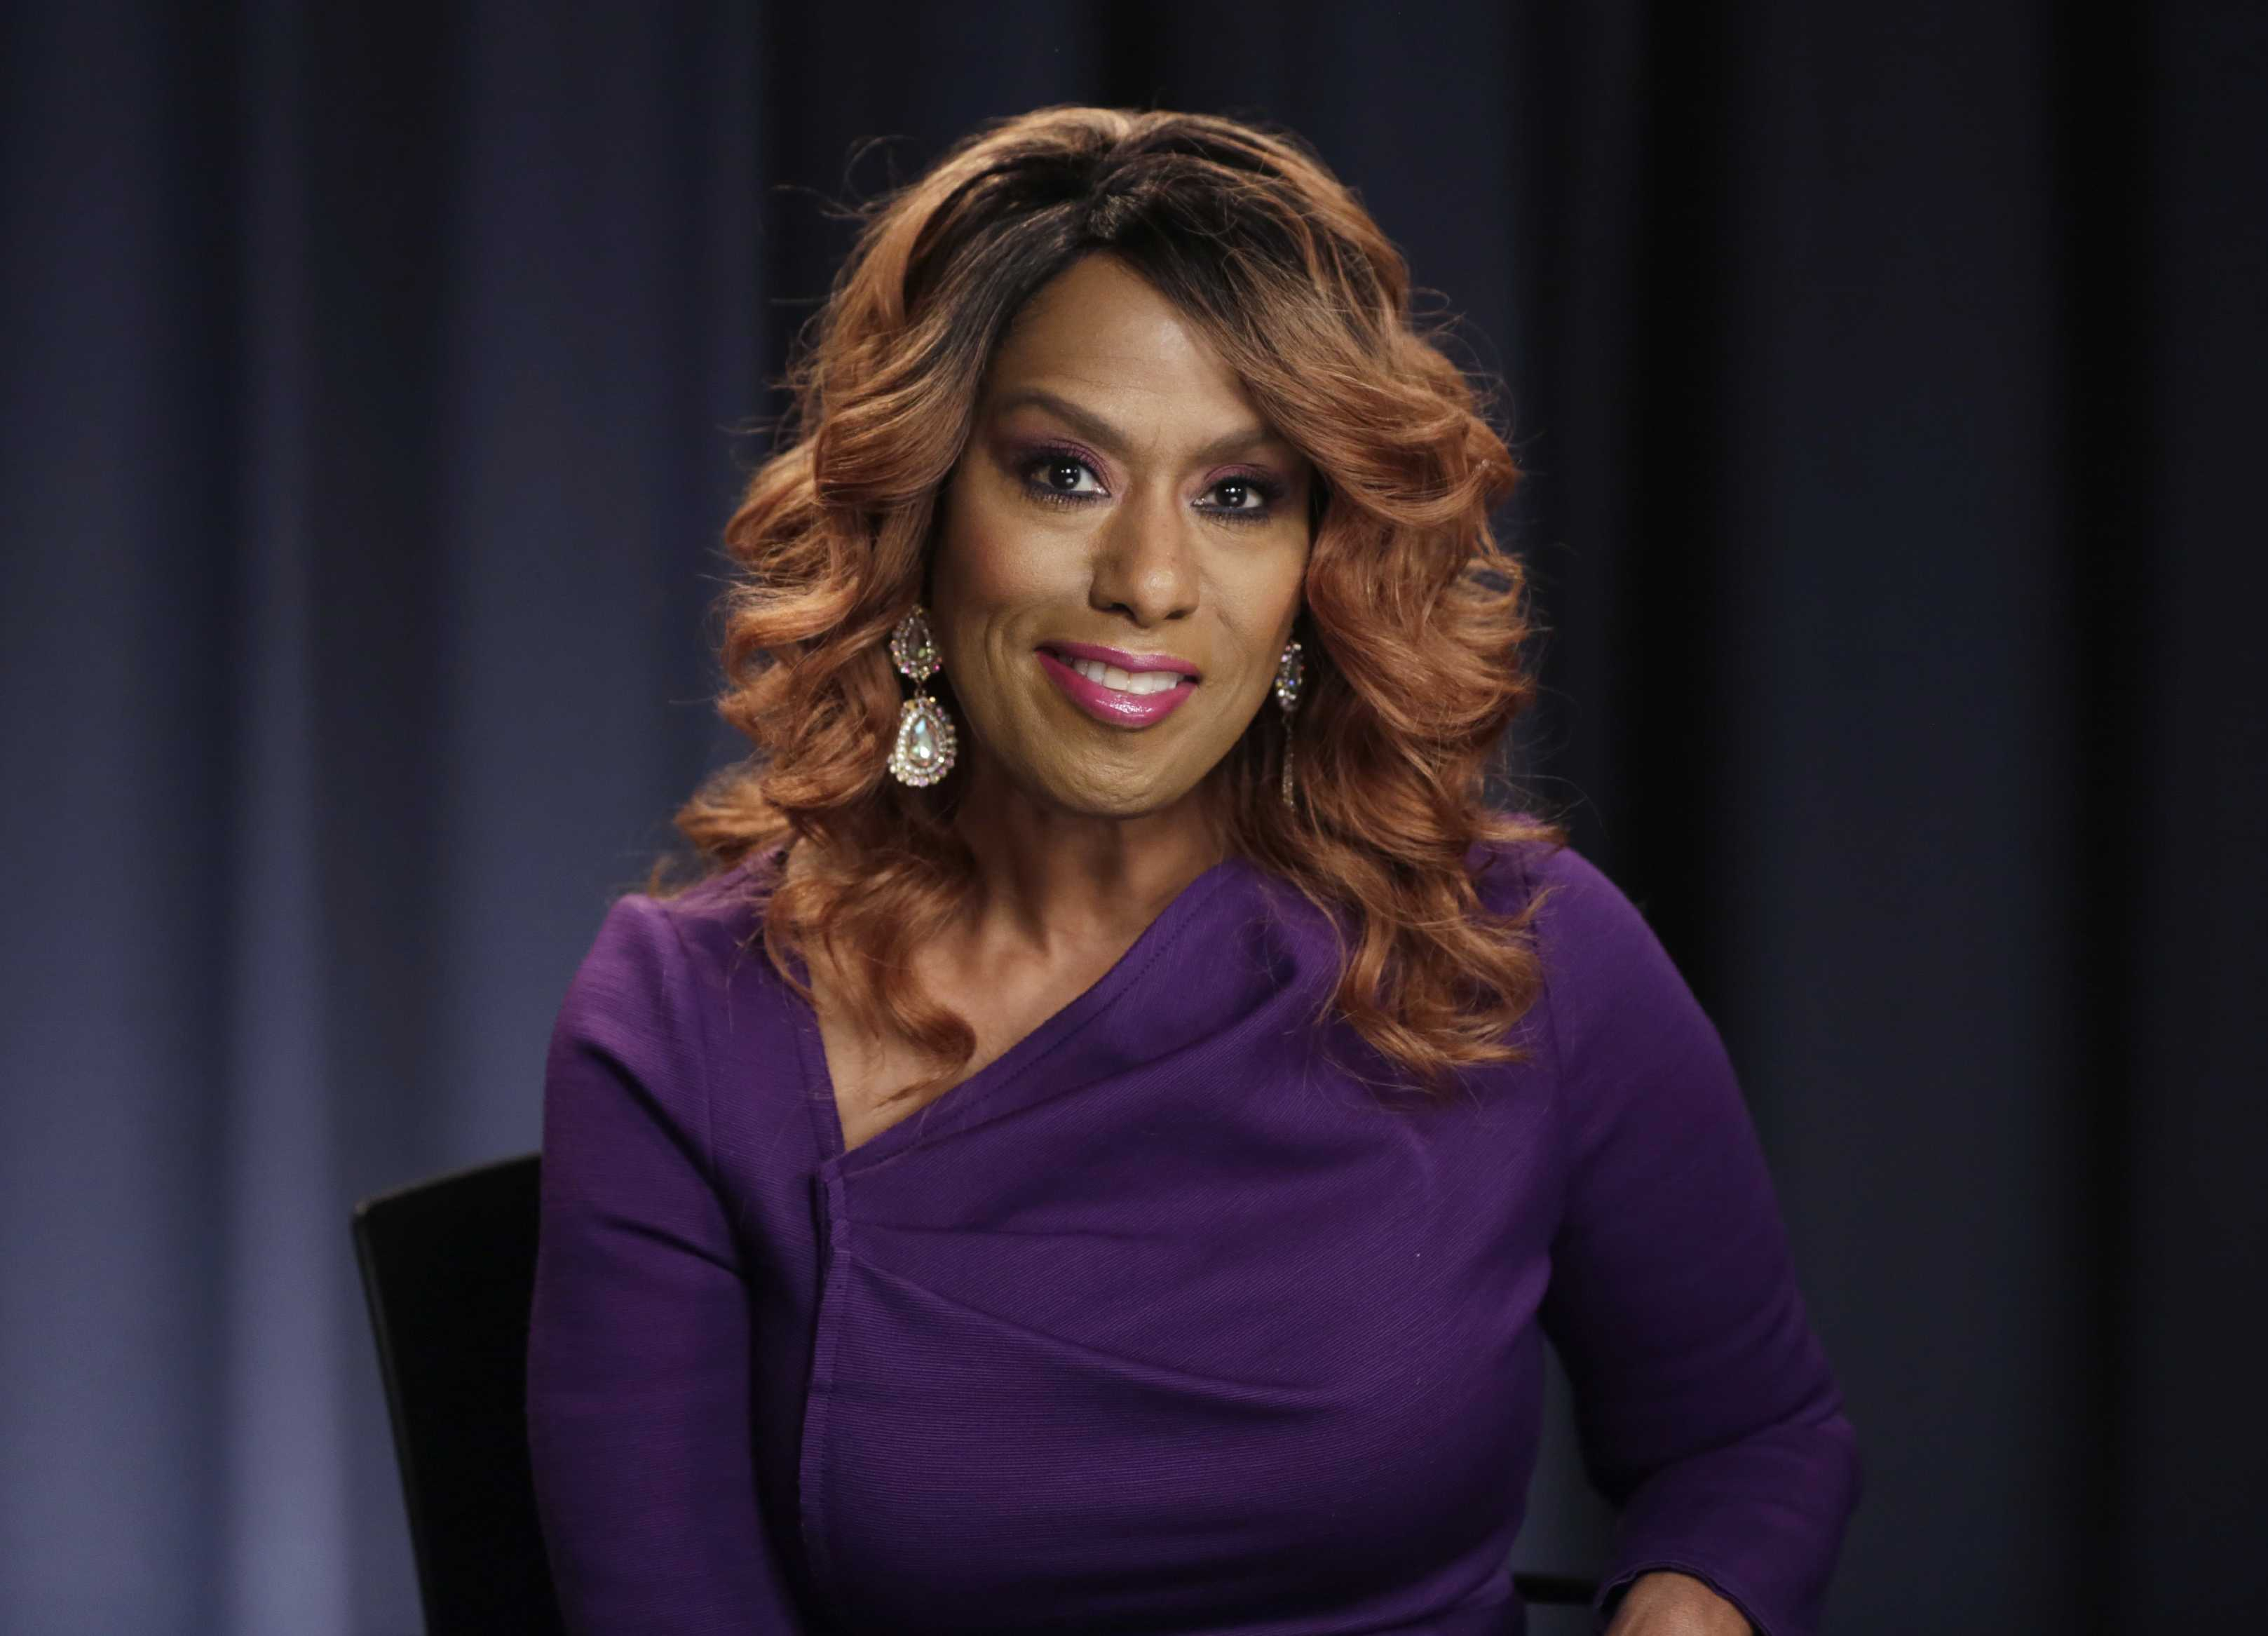 Broadway star Jennifer Holliday backs out of Trump inauguration gig